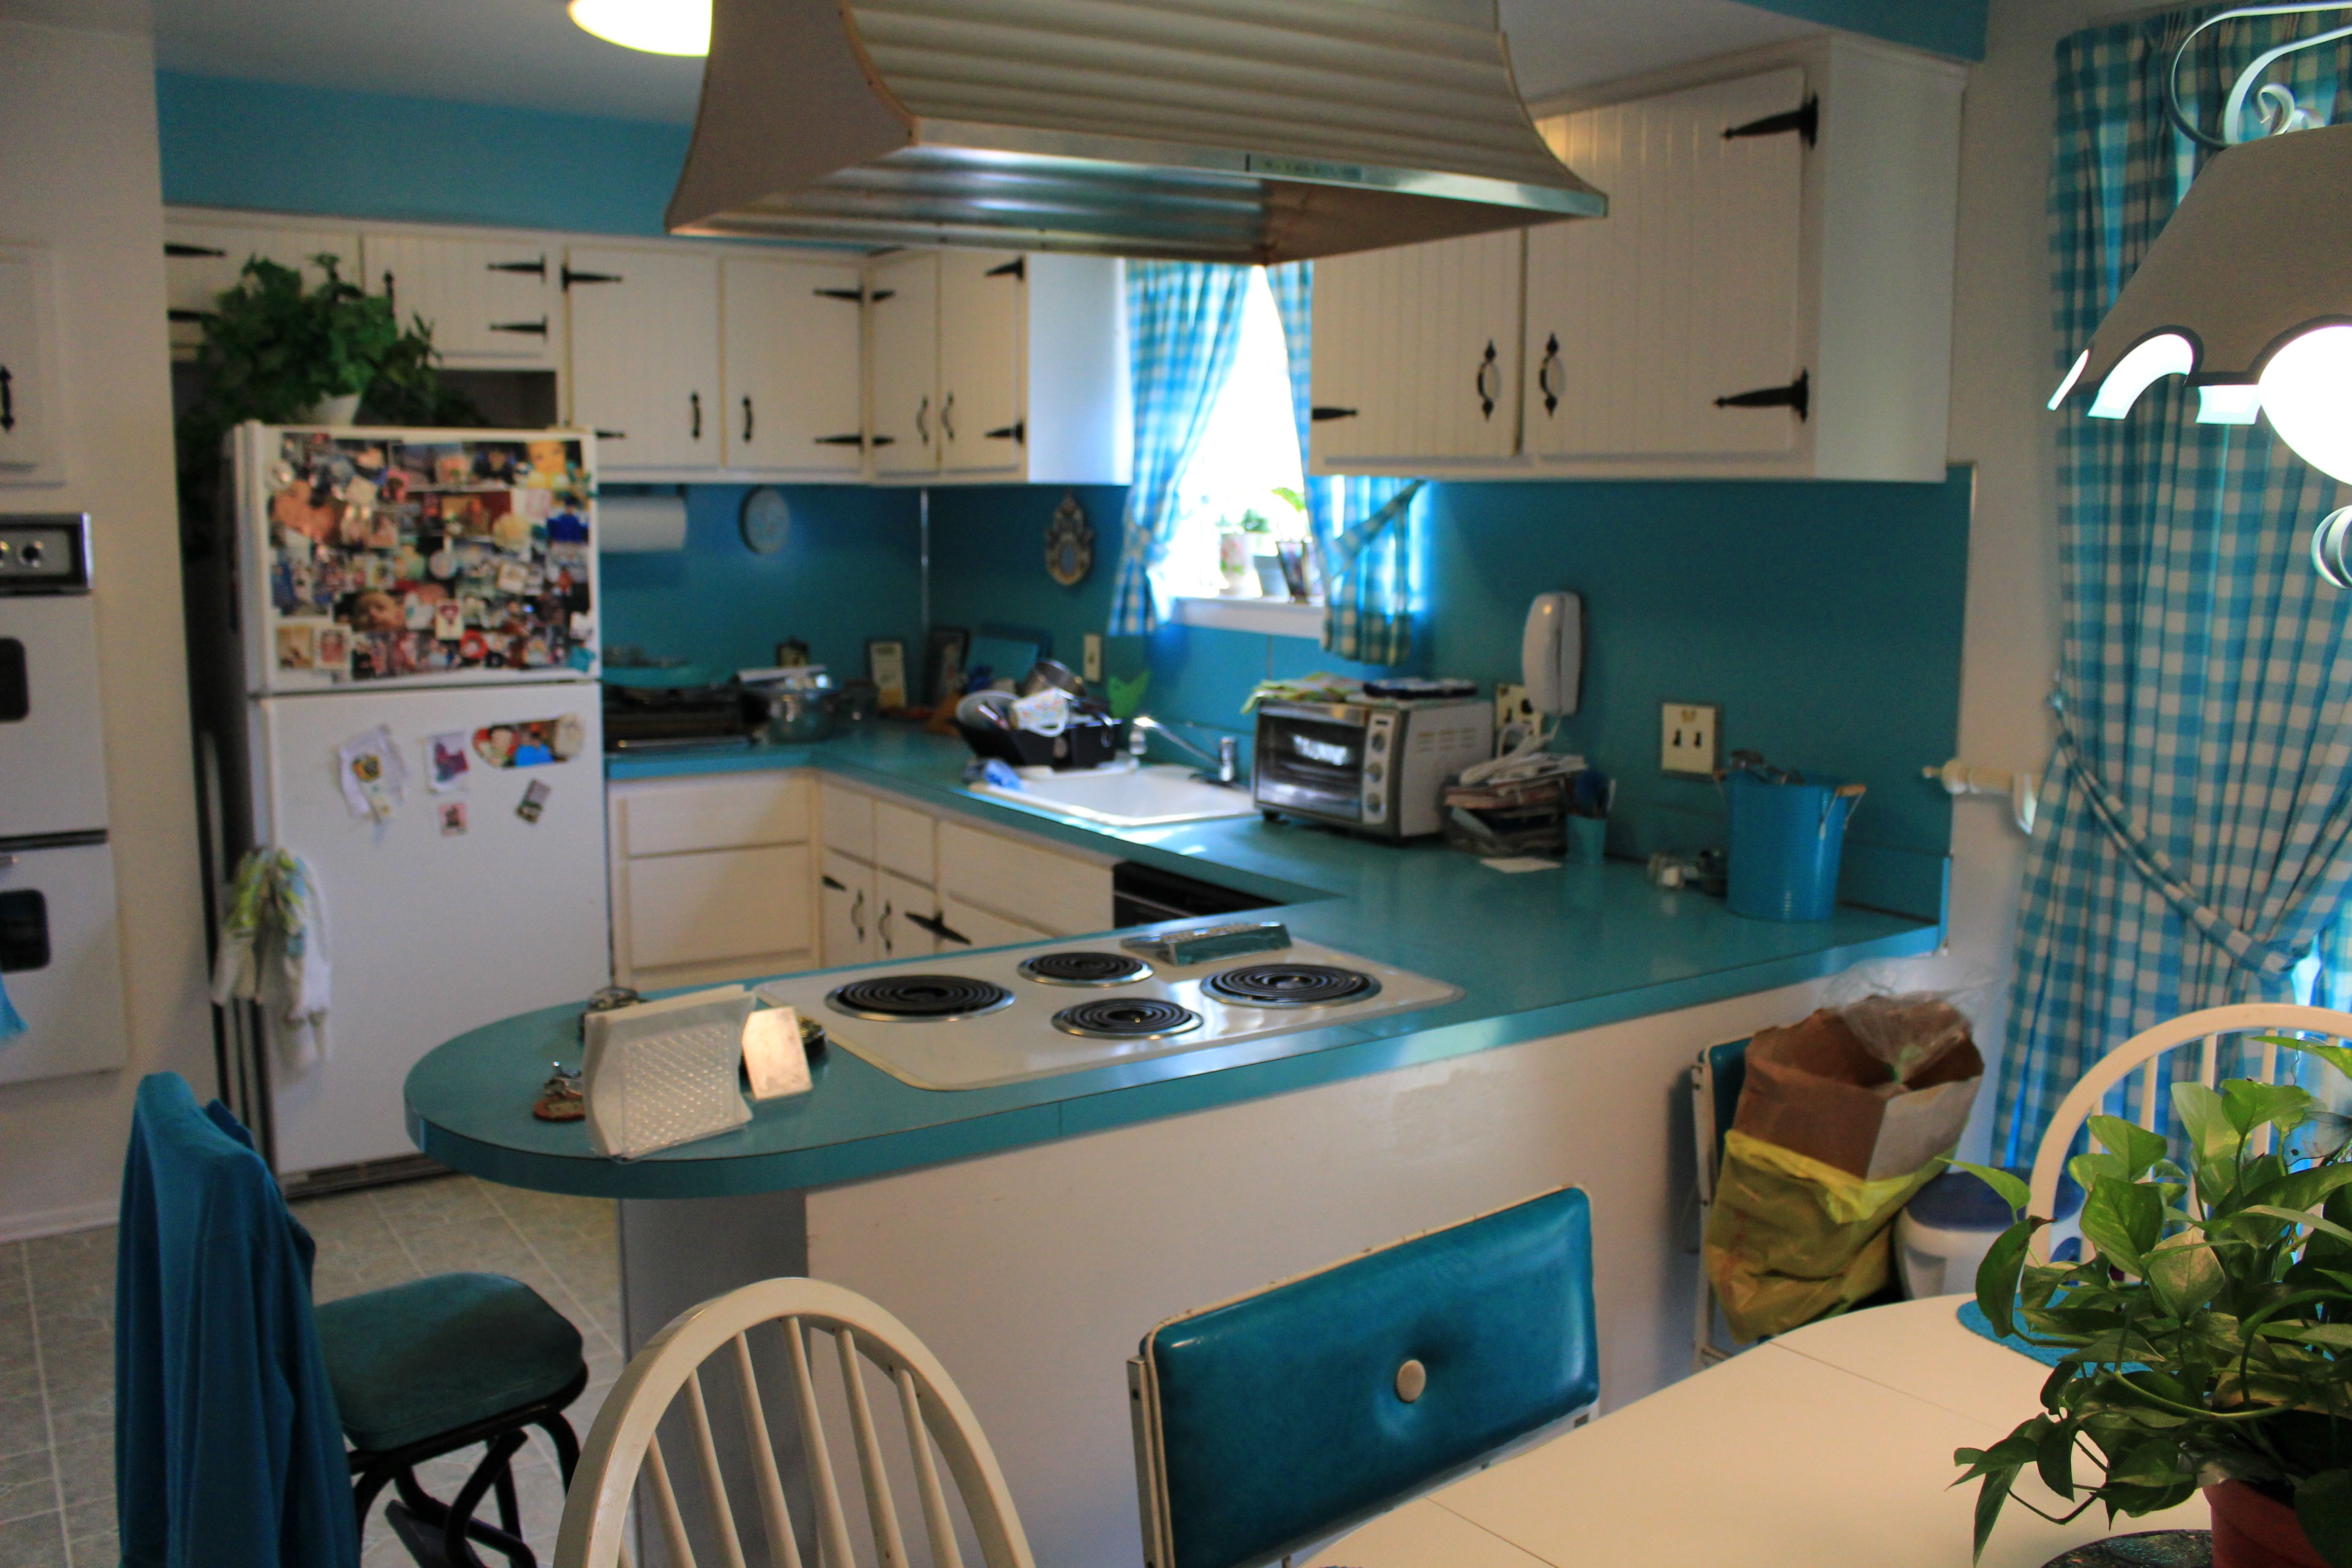 Is this kitchen ready for a makeover?